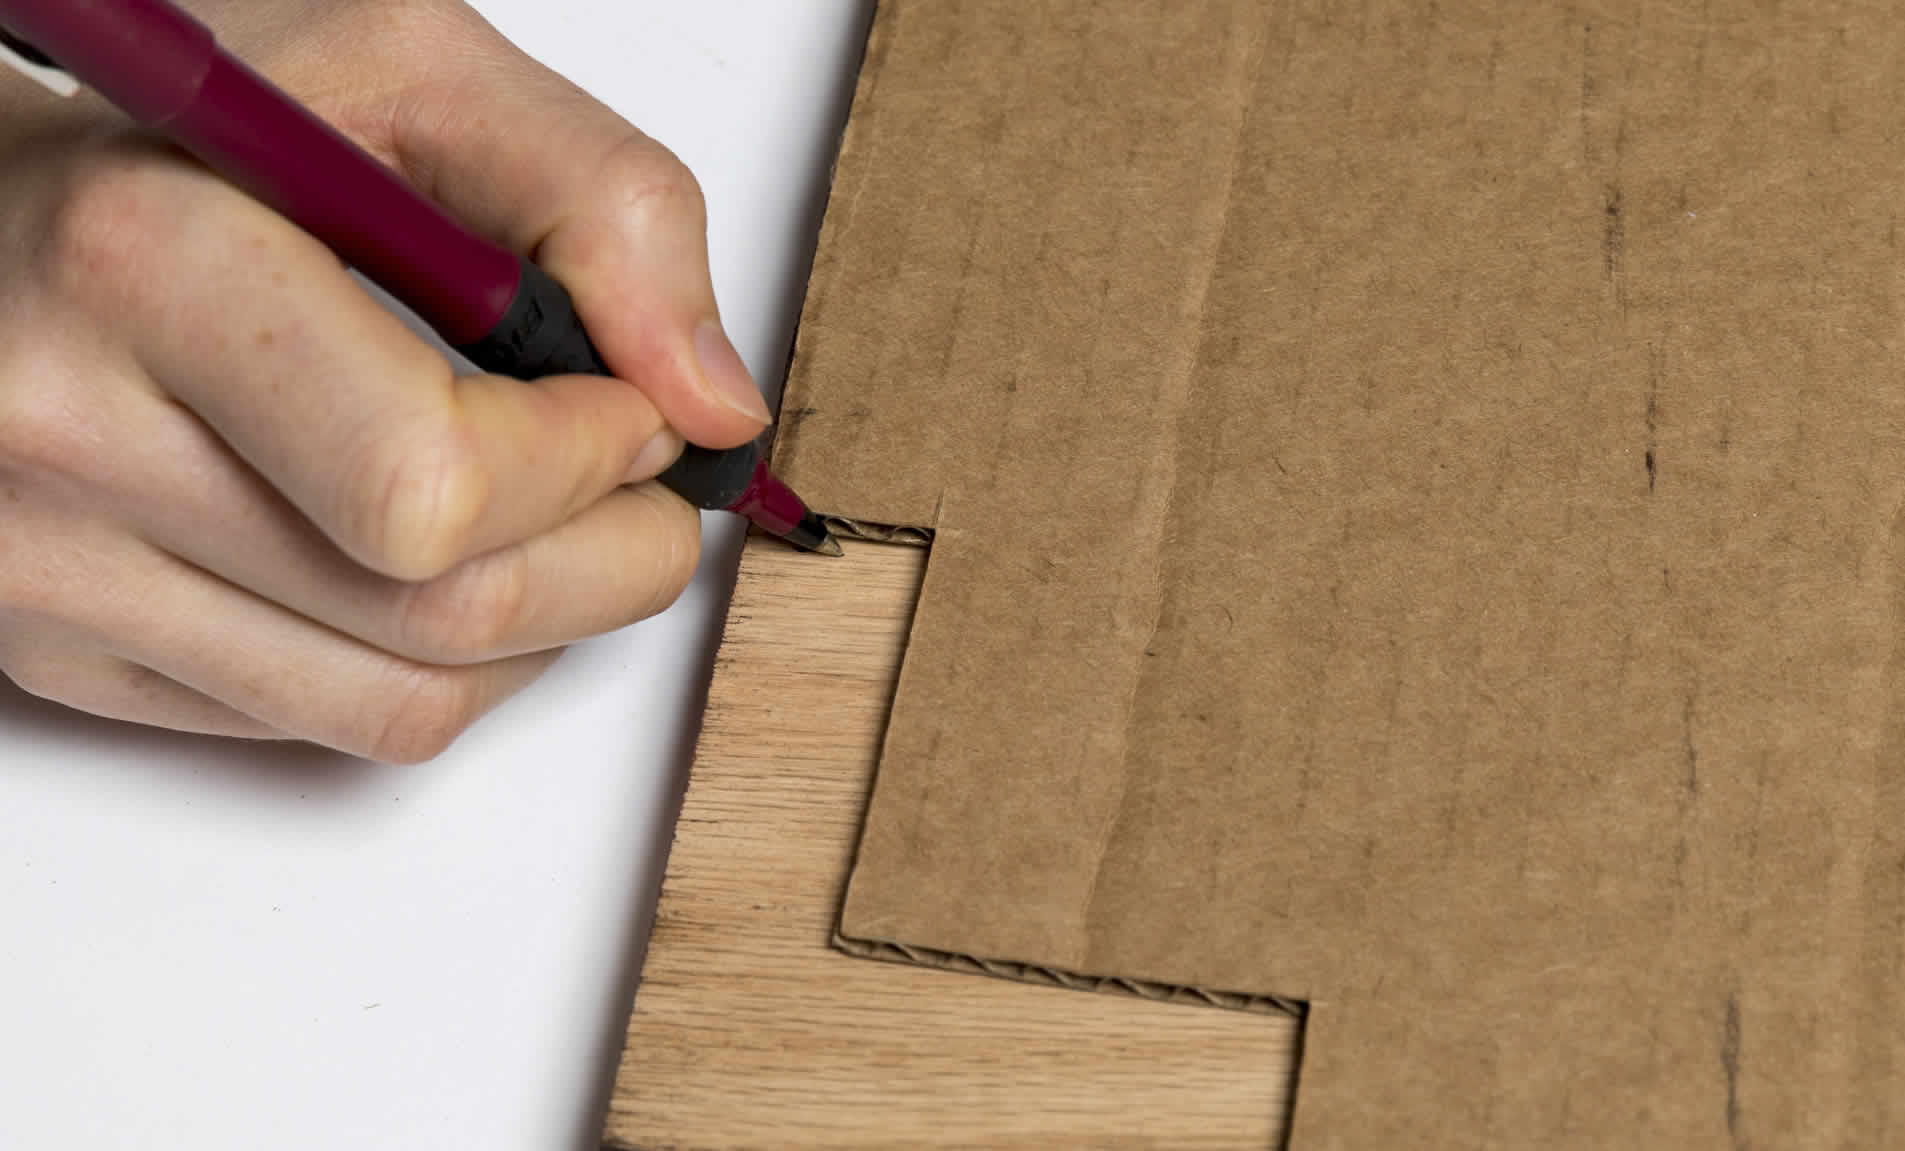 Pen marking wood to be cut